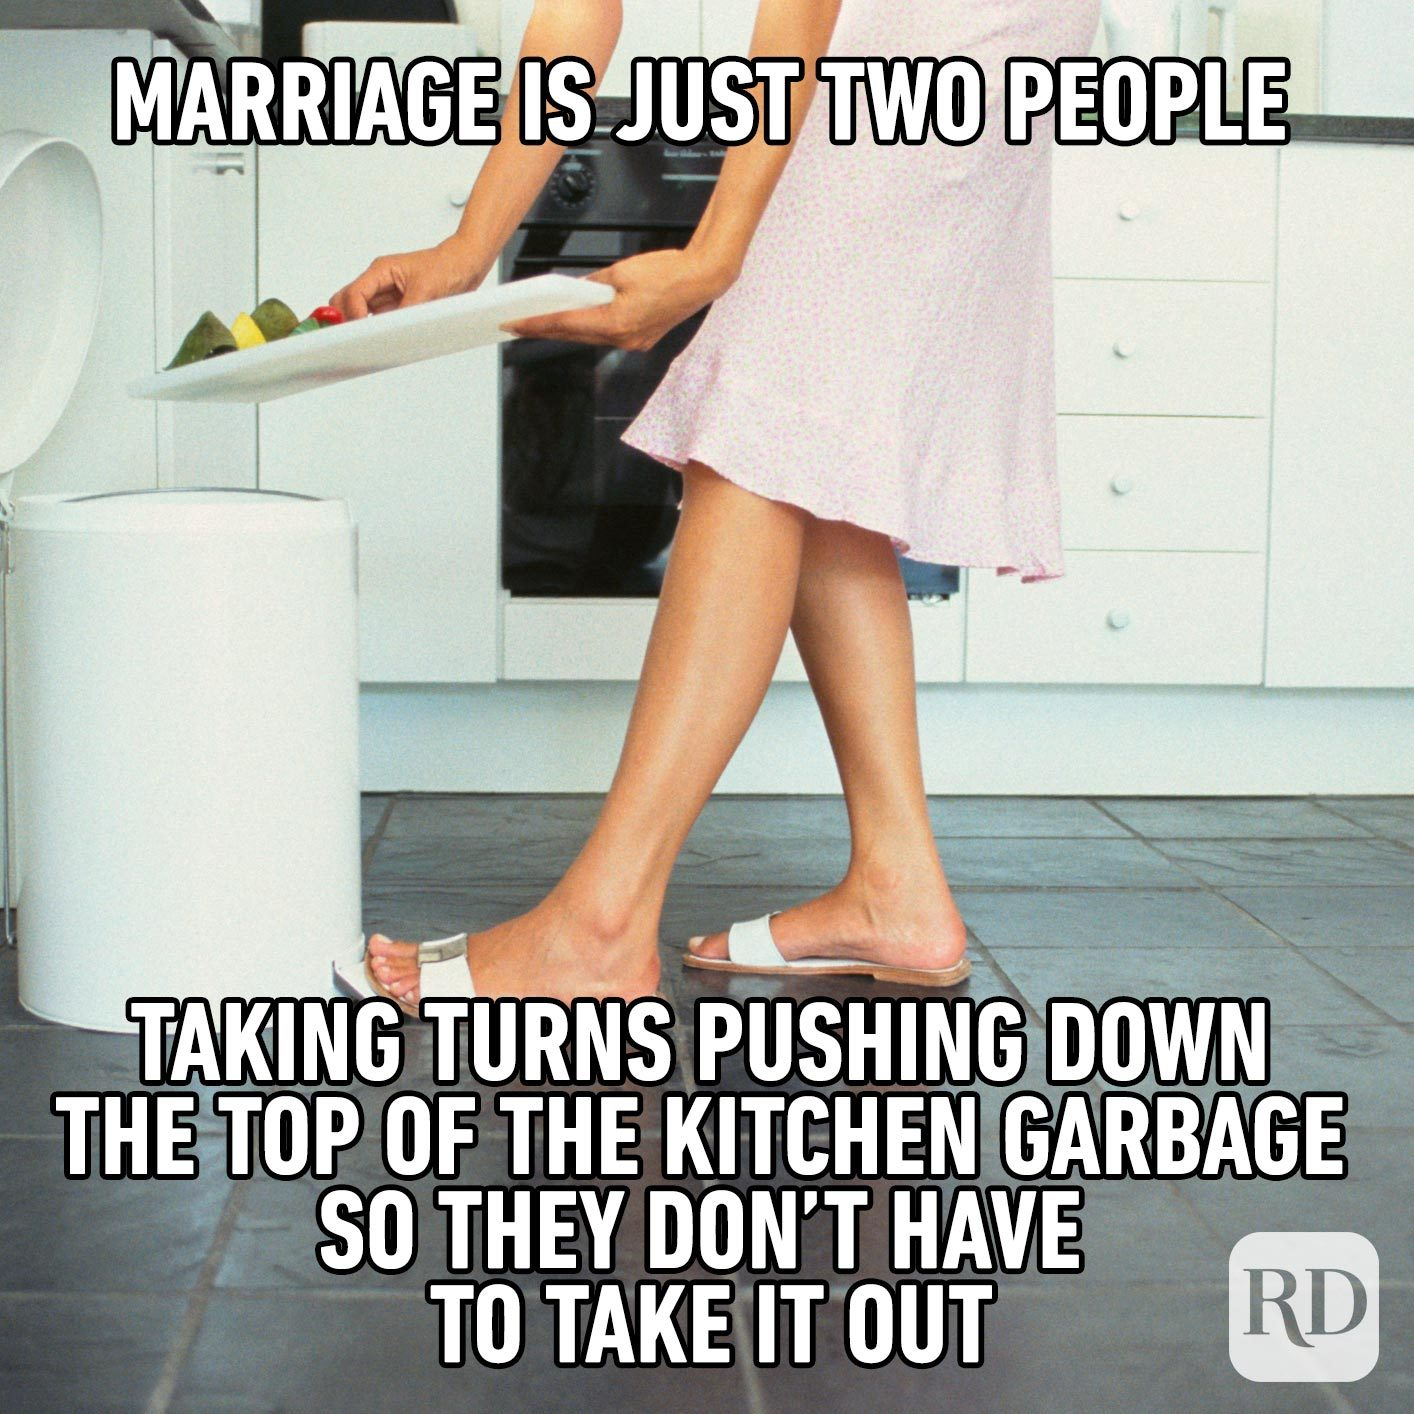 Woman pushing vegetables into the trash. Meme text: Marriage is just two people taking turns pushing down the top of the kitchen garbage so they don't have to take it out